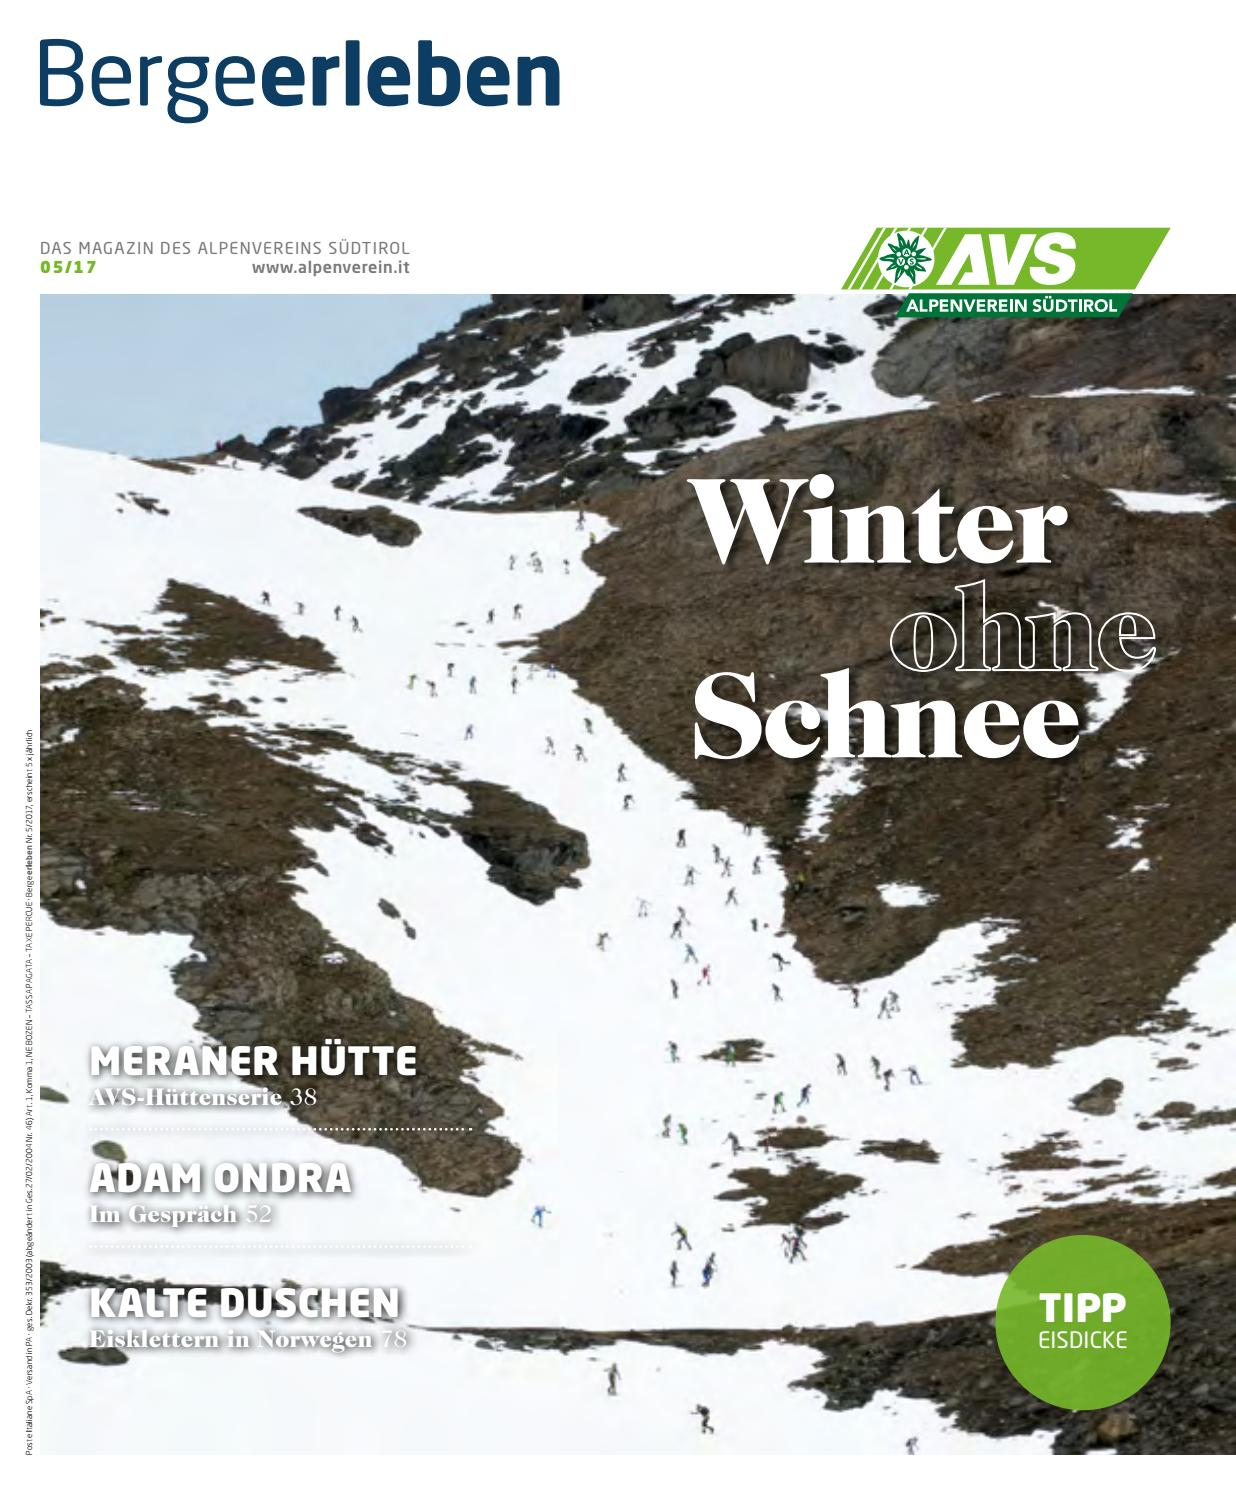 Bergeerleben Alpenverein Magazin By Avs 2017 Südtirol November Issuu 9DHI2eEYWb